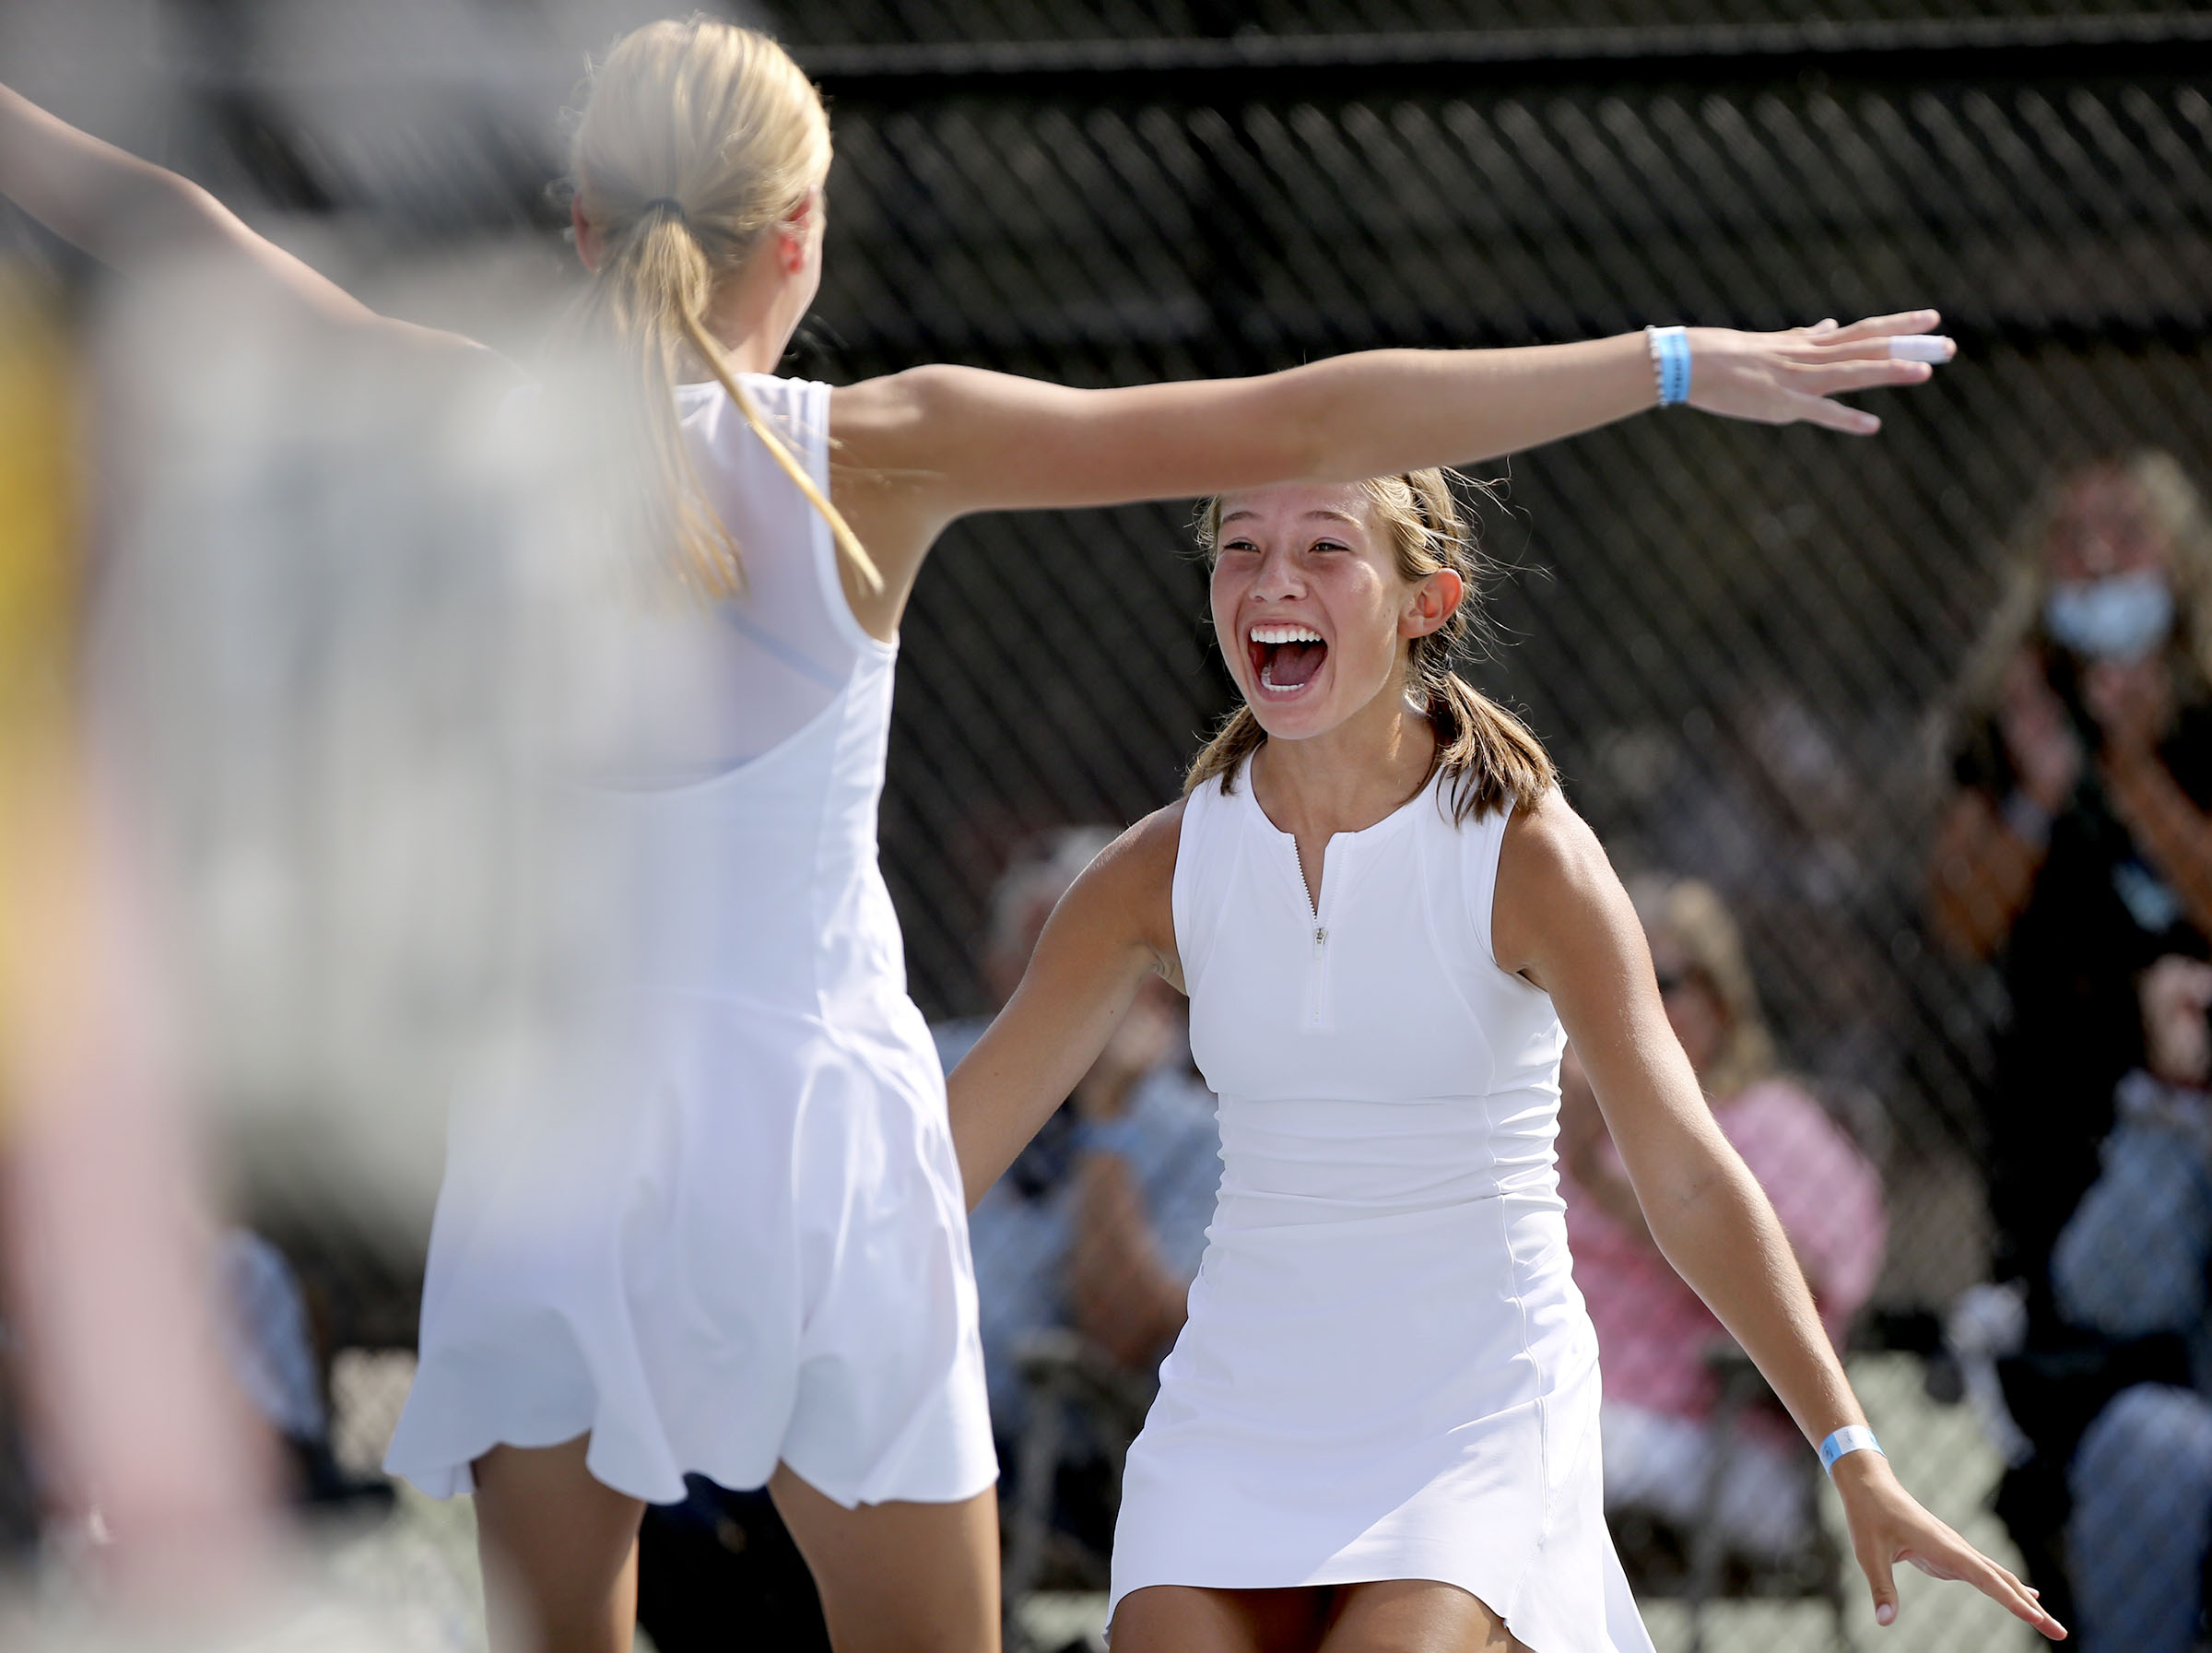 Timpview's Emma Wilkinson, right, and Kylie Woods react to winning the first doubles finals against Alta during the 5A girls tennis state championship at Liberty Park in Salt Lake City on Saturday, Oct. 3, 2020.